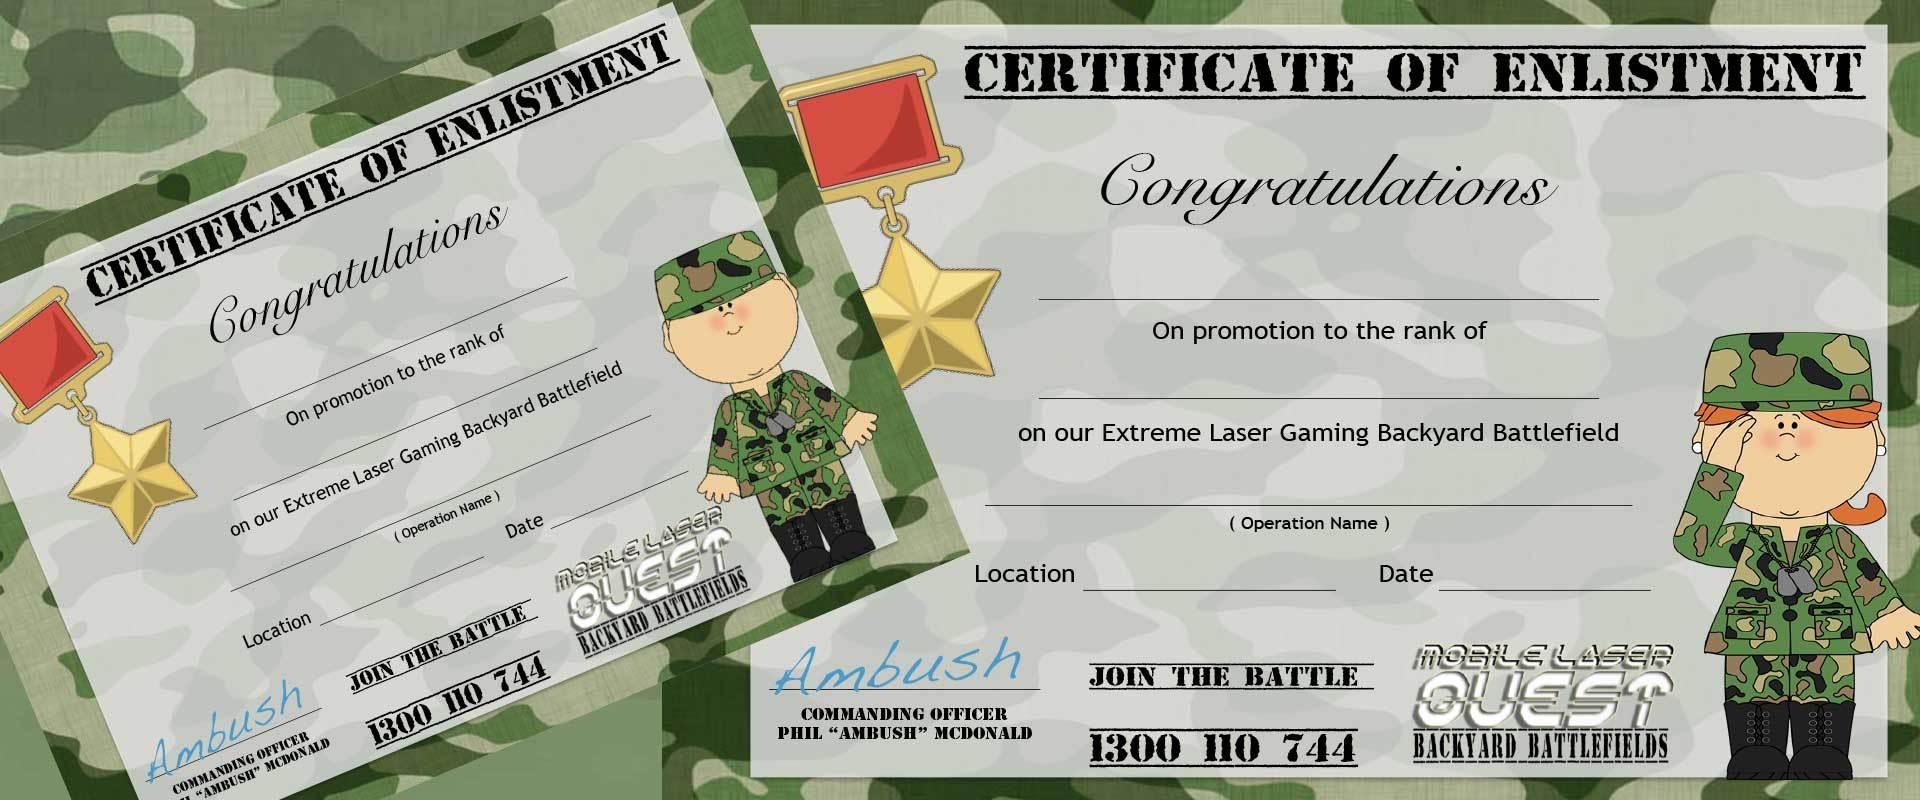 Make your next special event one to remember with Mobile Live Laser Tag Skirmish